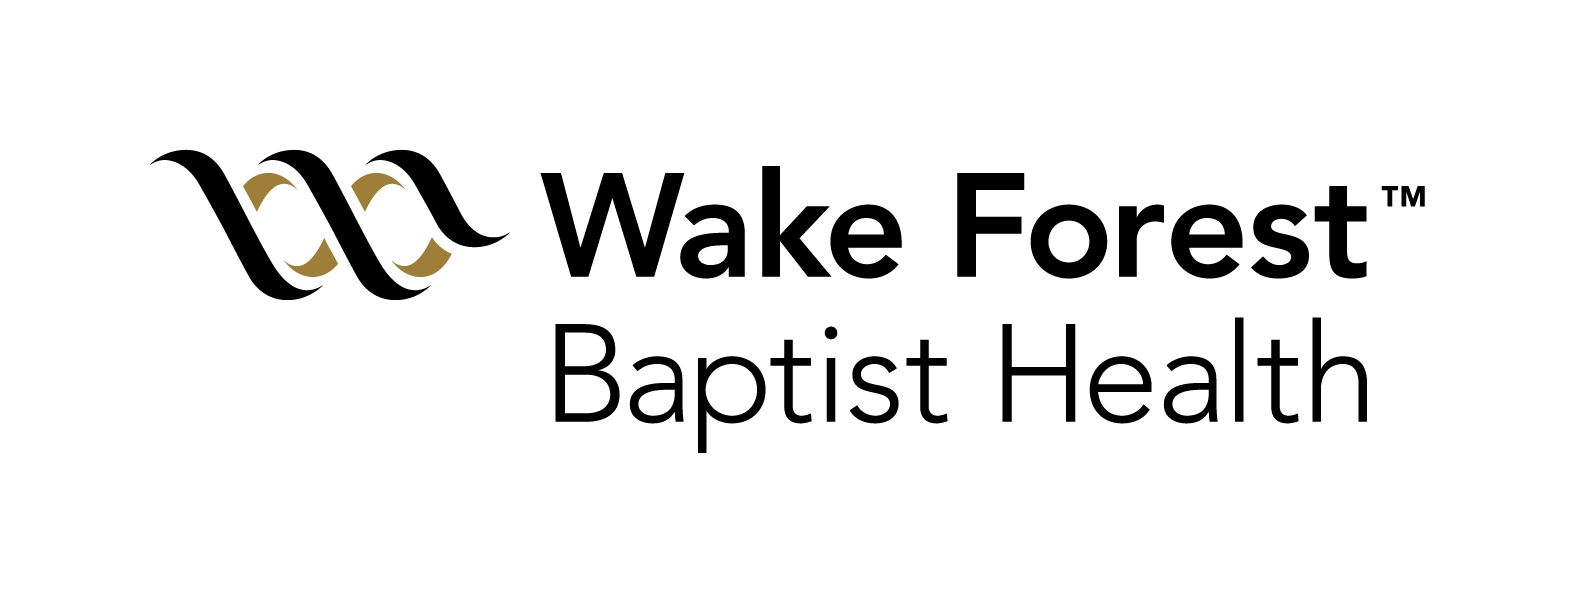 Wake Forest Clinical Trial and USUHS Hair Patent